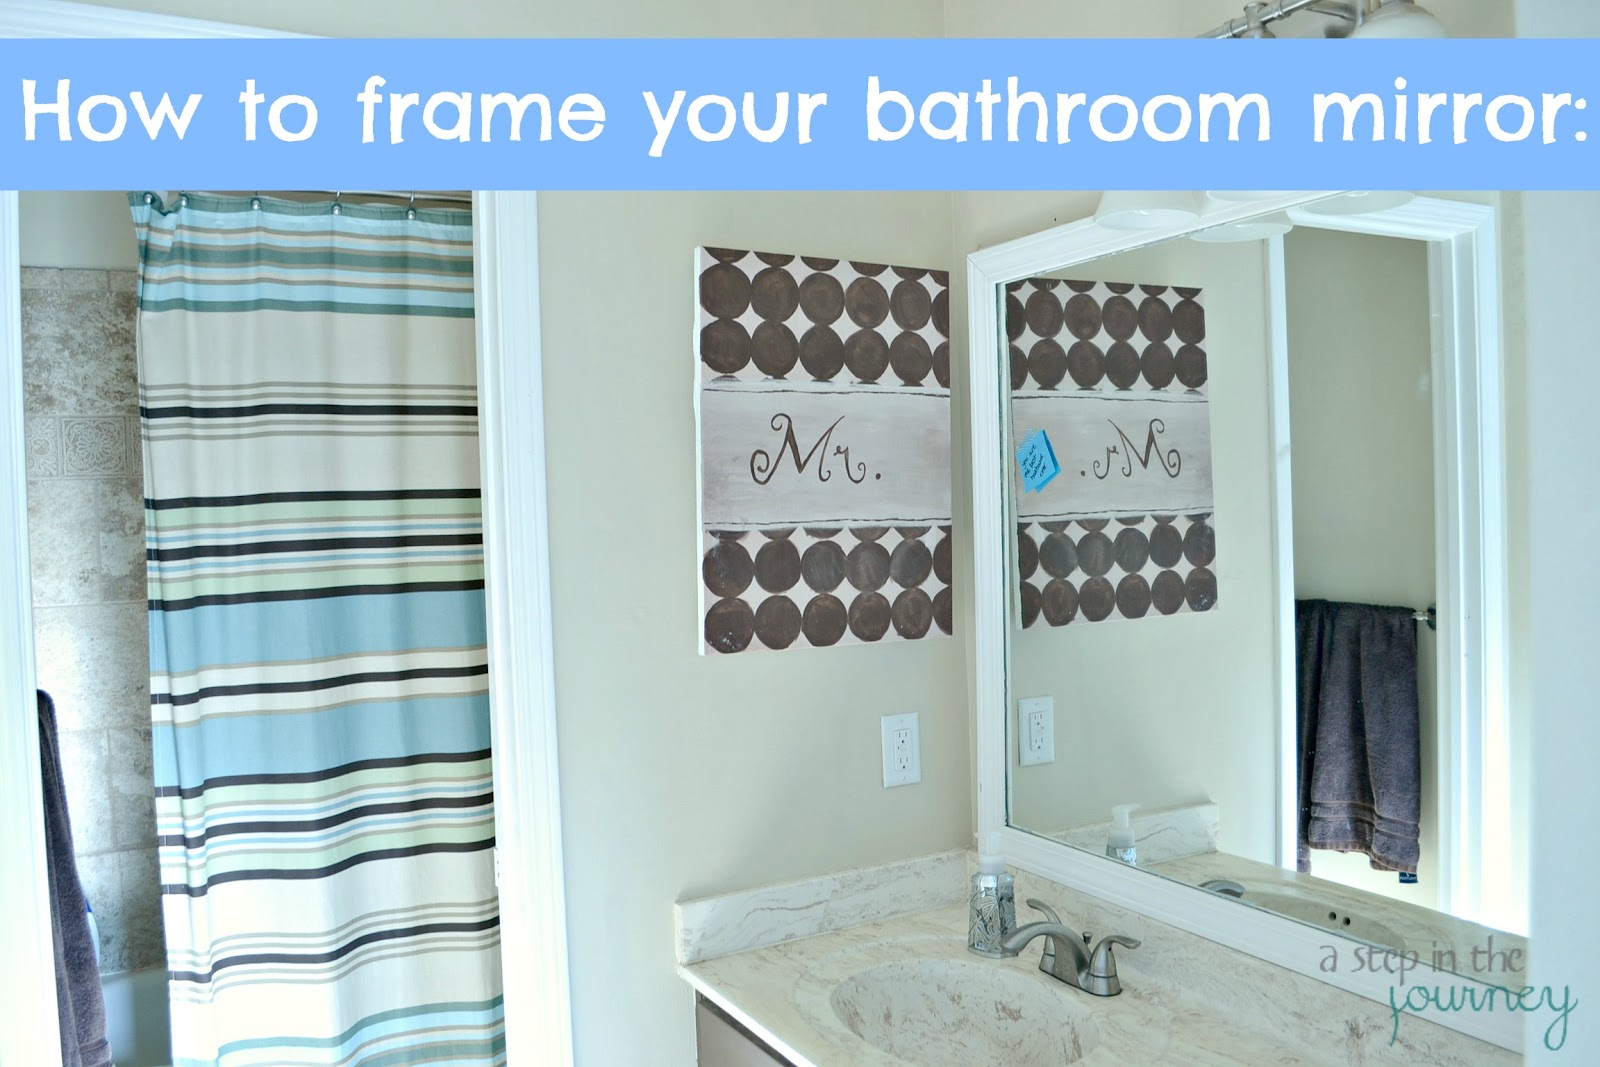 How To Frame A Large Bathroom Mirror How To Frame Your Bathroom Mirror